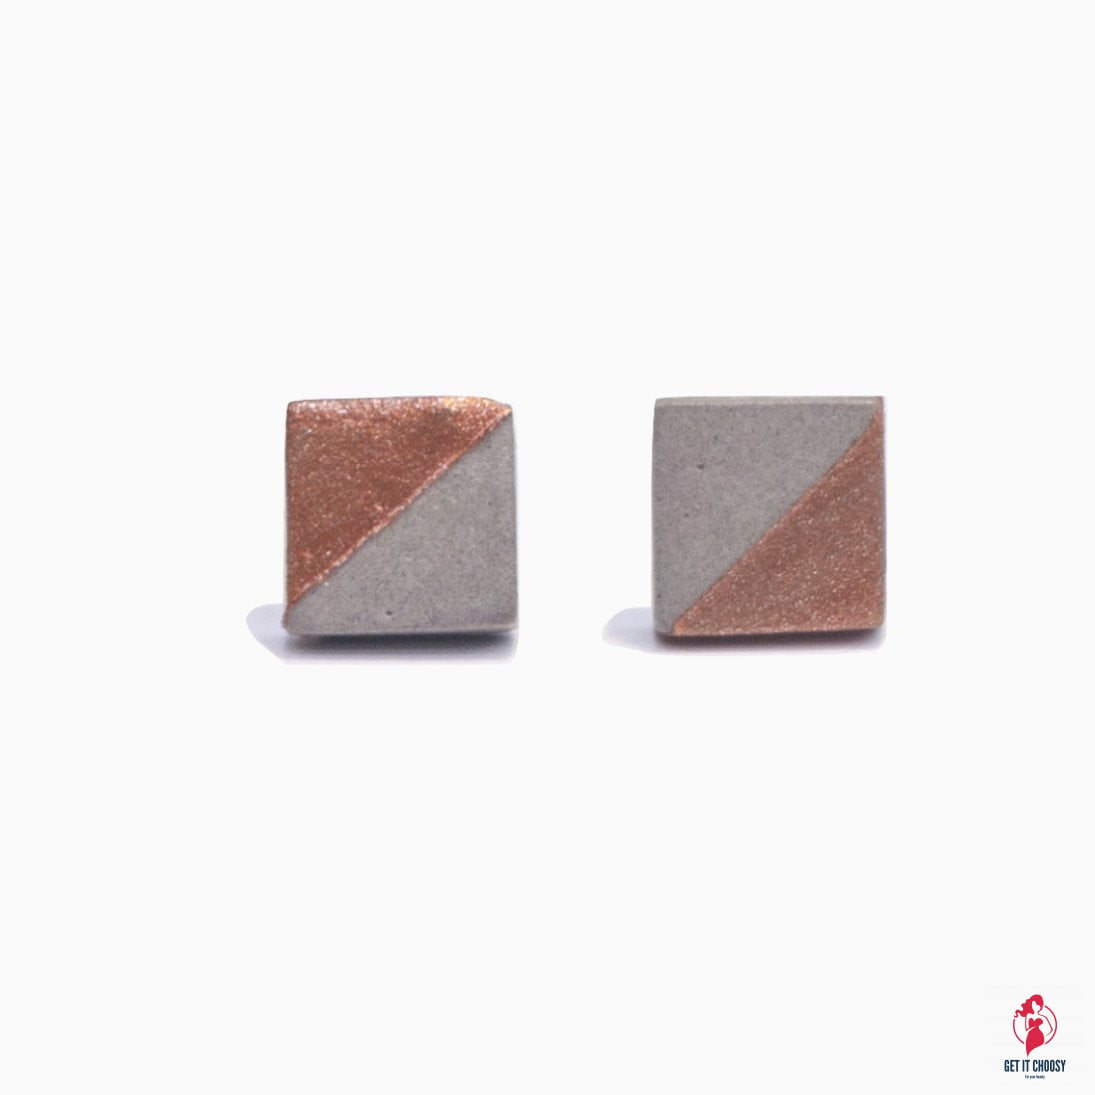 Handmade Bronze Square Concrete Earrings by Getitchoosy